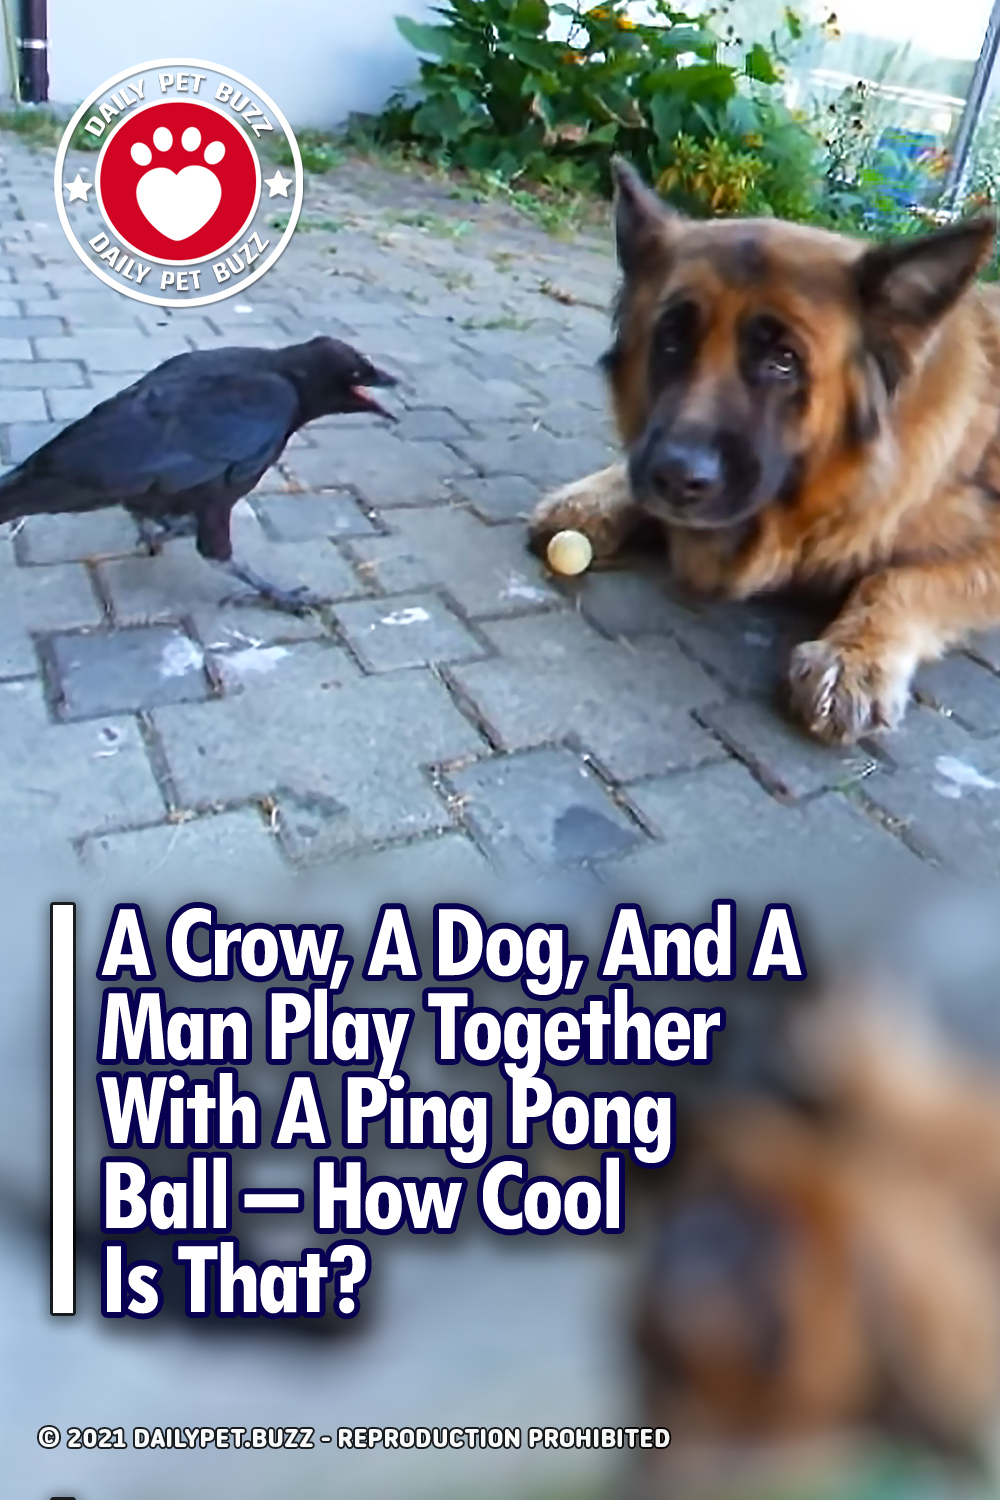 A Crow, A Dog, And A Man Play Together With A Ping Pong Ball – How Cool Is That?